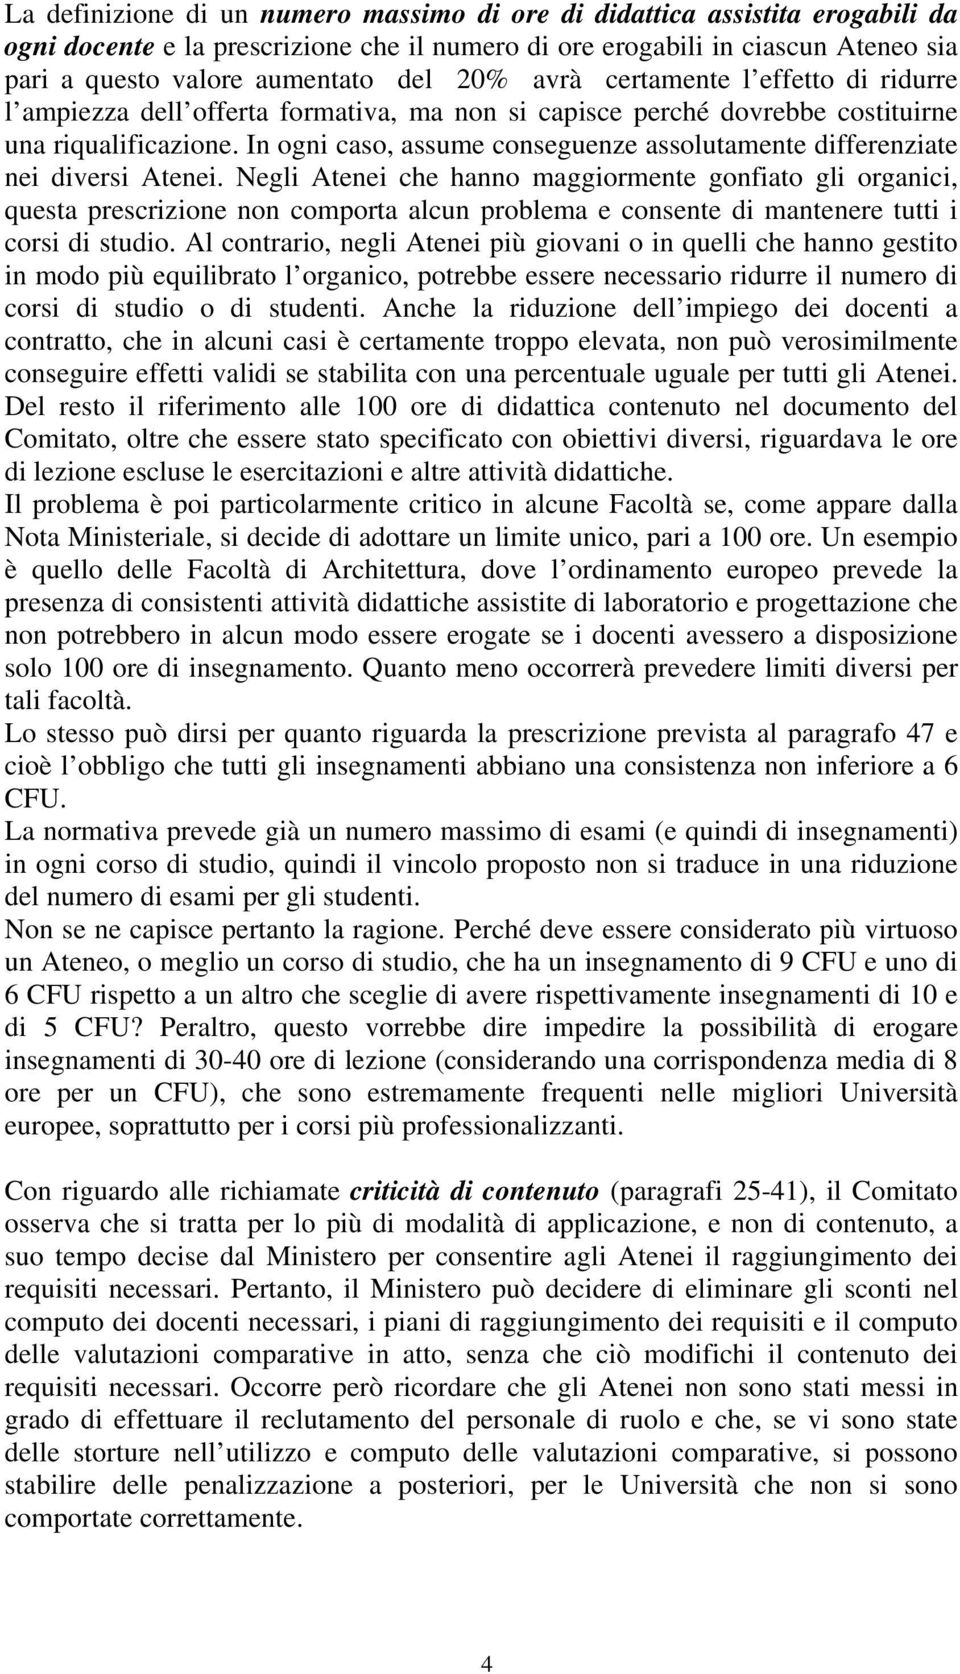 In ogni caso, assume conseguenze assolutamente differenziate nei diversi Atenei.